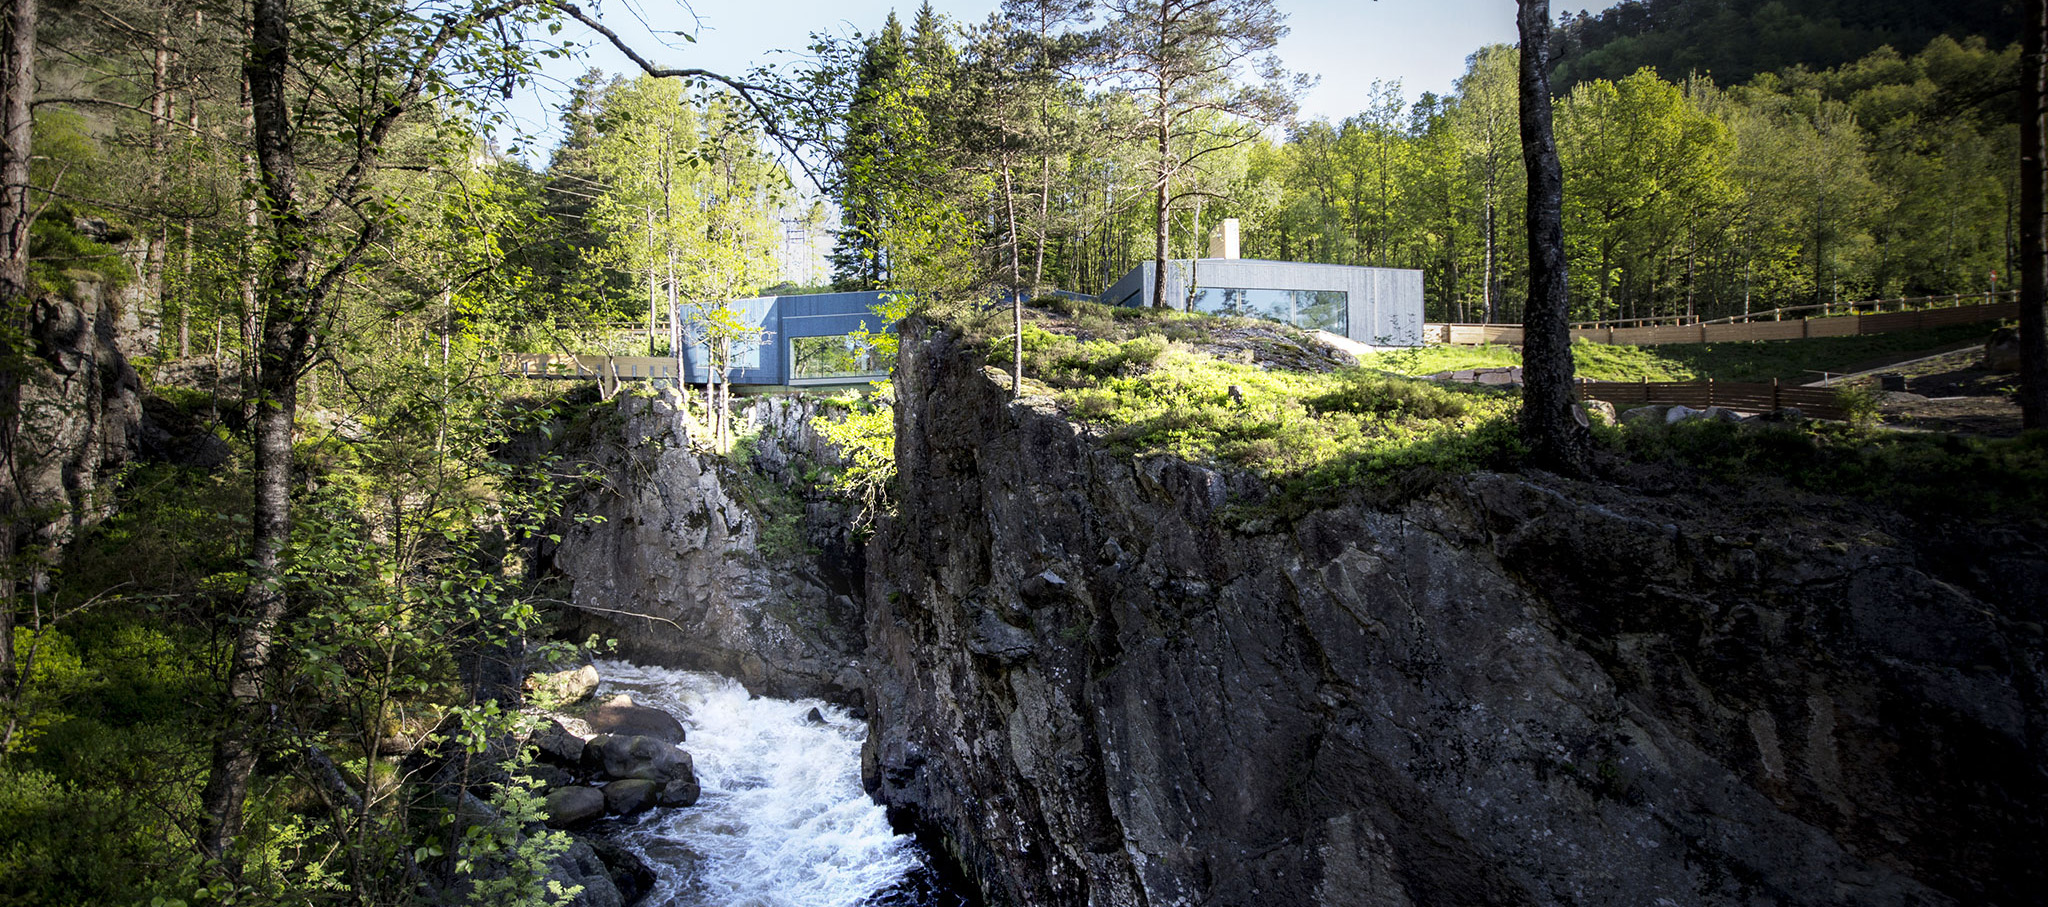 Salmon ladder at the Kvasfossen waterfall, by Rever & Drage Architects. Photograph © Tom Auger